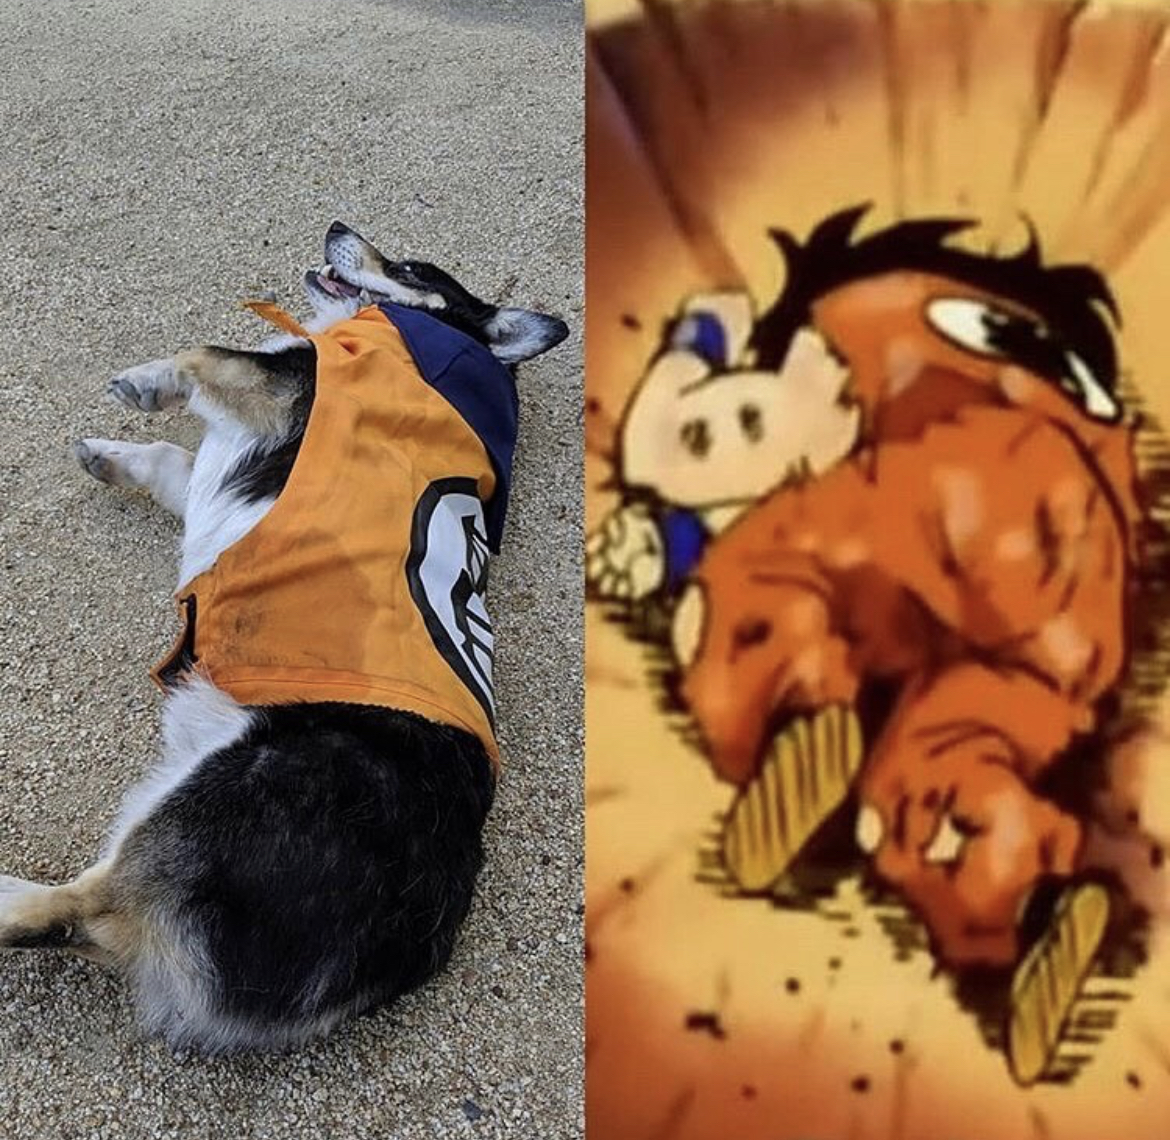 Yamcha from Dragon Ball z lying next to a dog